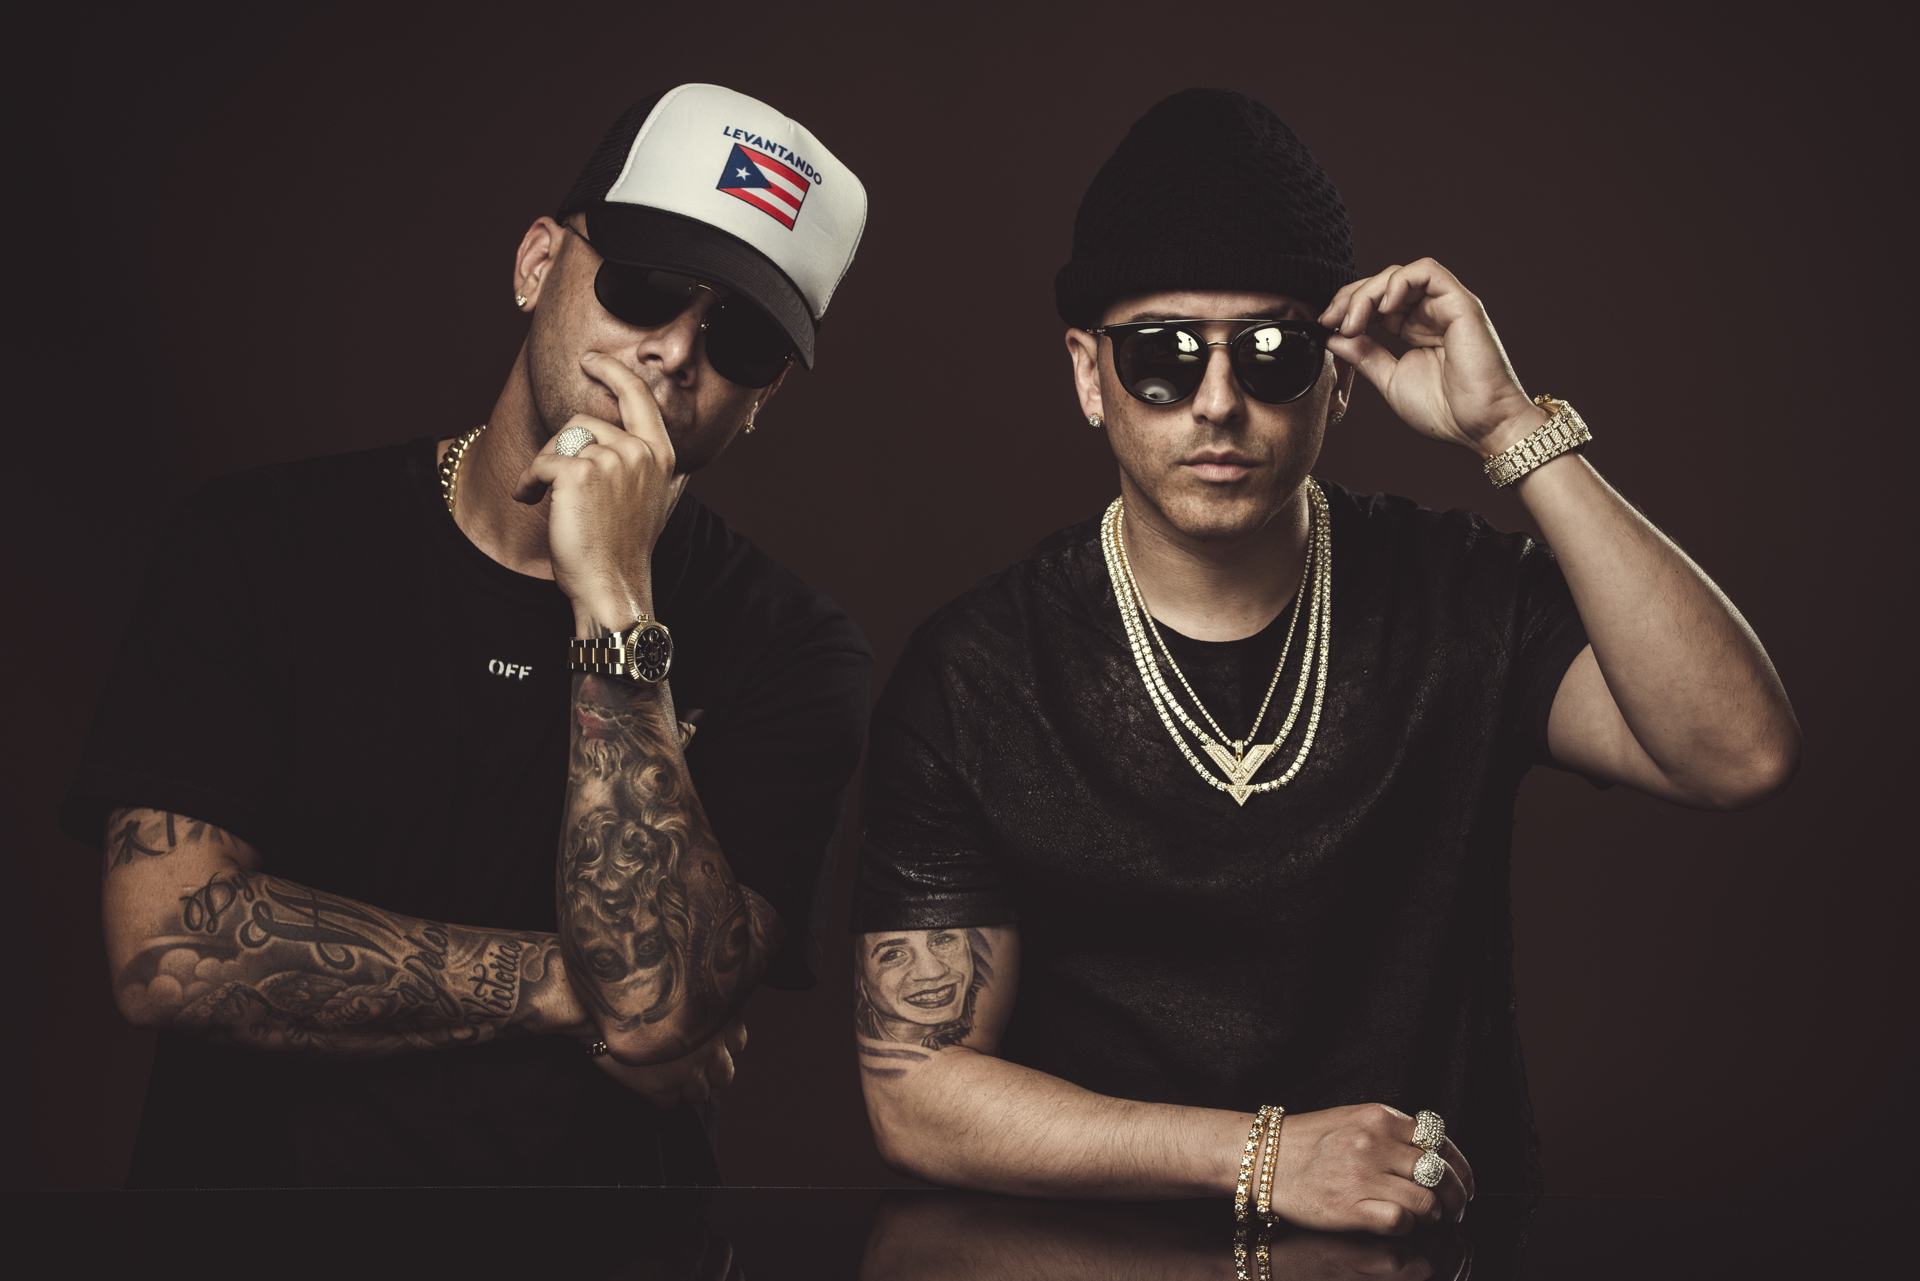 Wisin Y Yandel Are Back Performed Together For The First